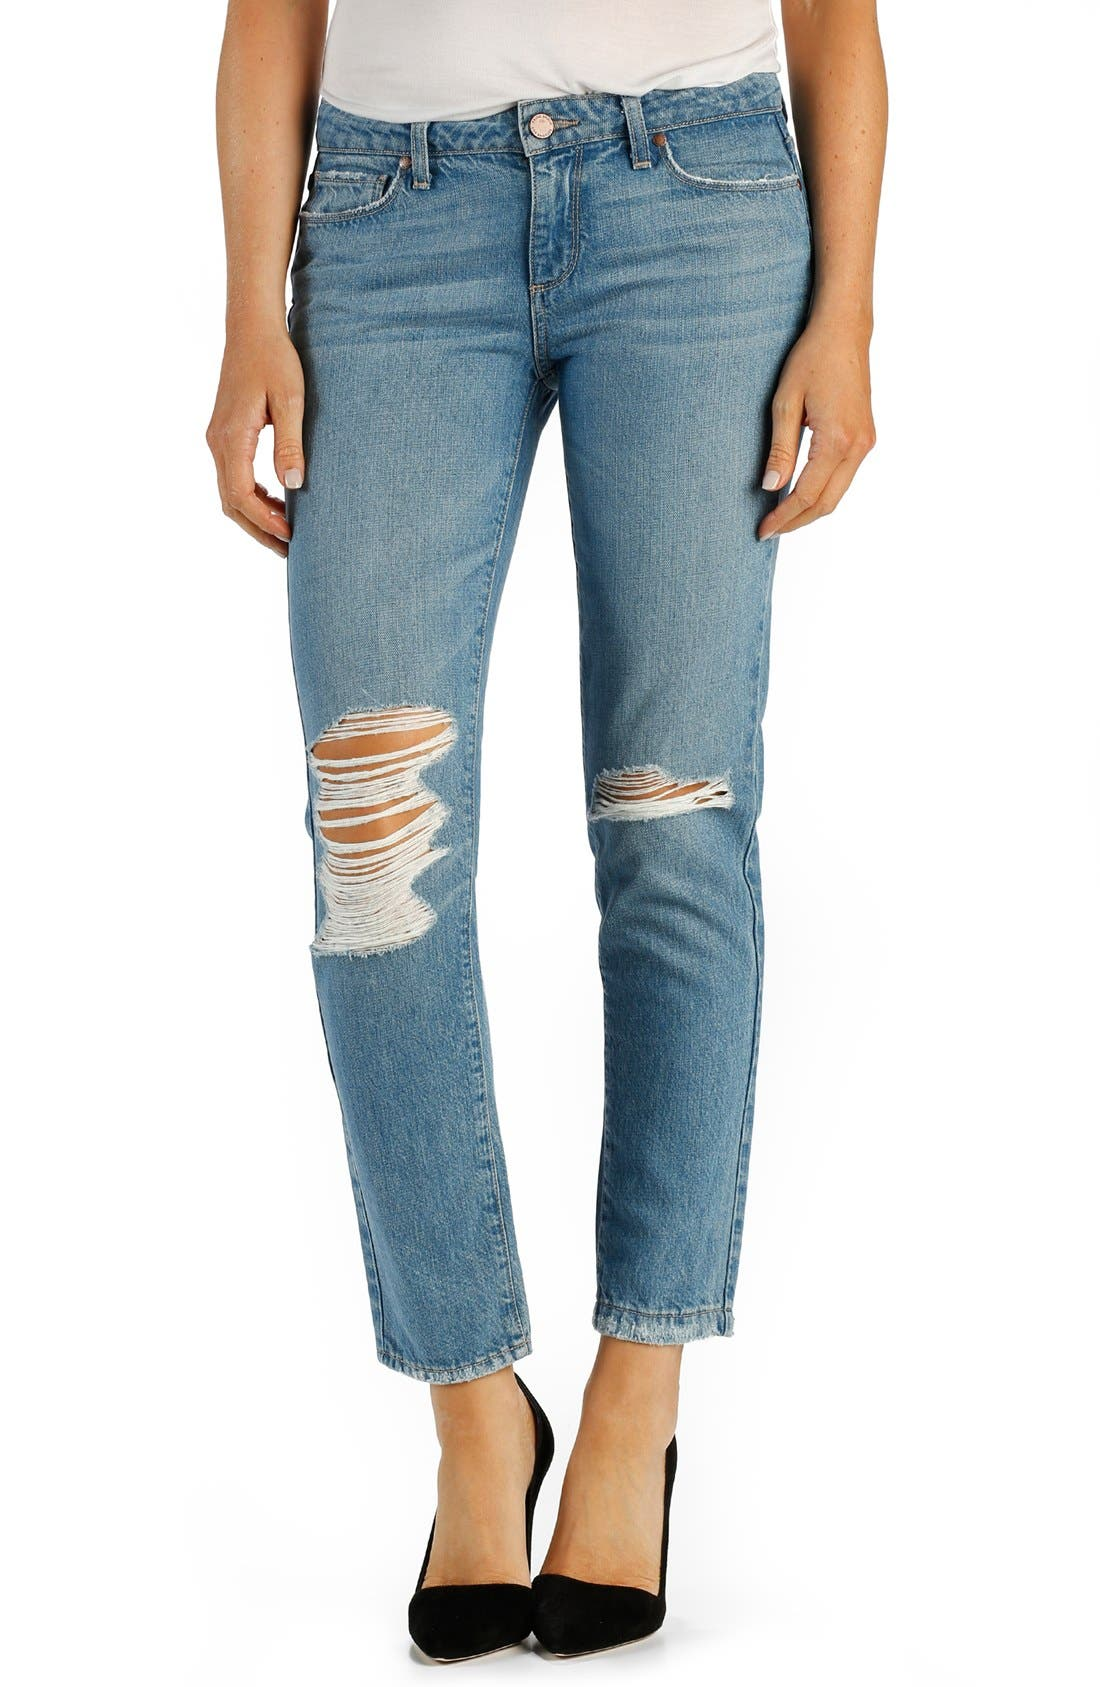 Alternate Image 1 Selected - Paige Denim 'Jimmy Jimmy' Ankle Boyfriend Skinny Jeans (Brynlee)